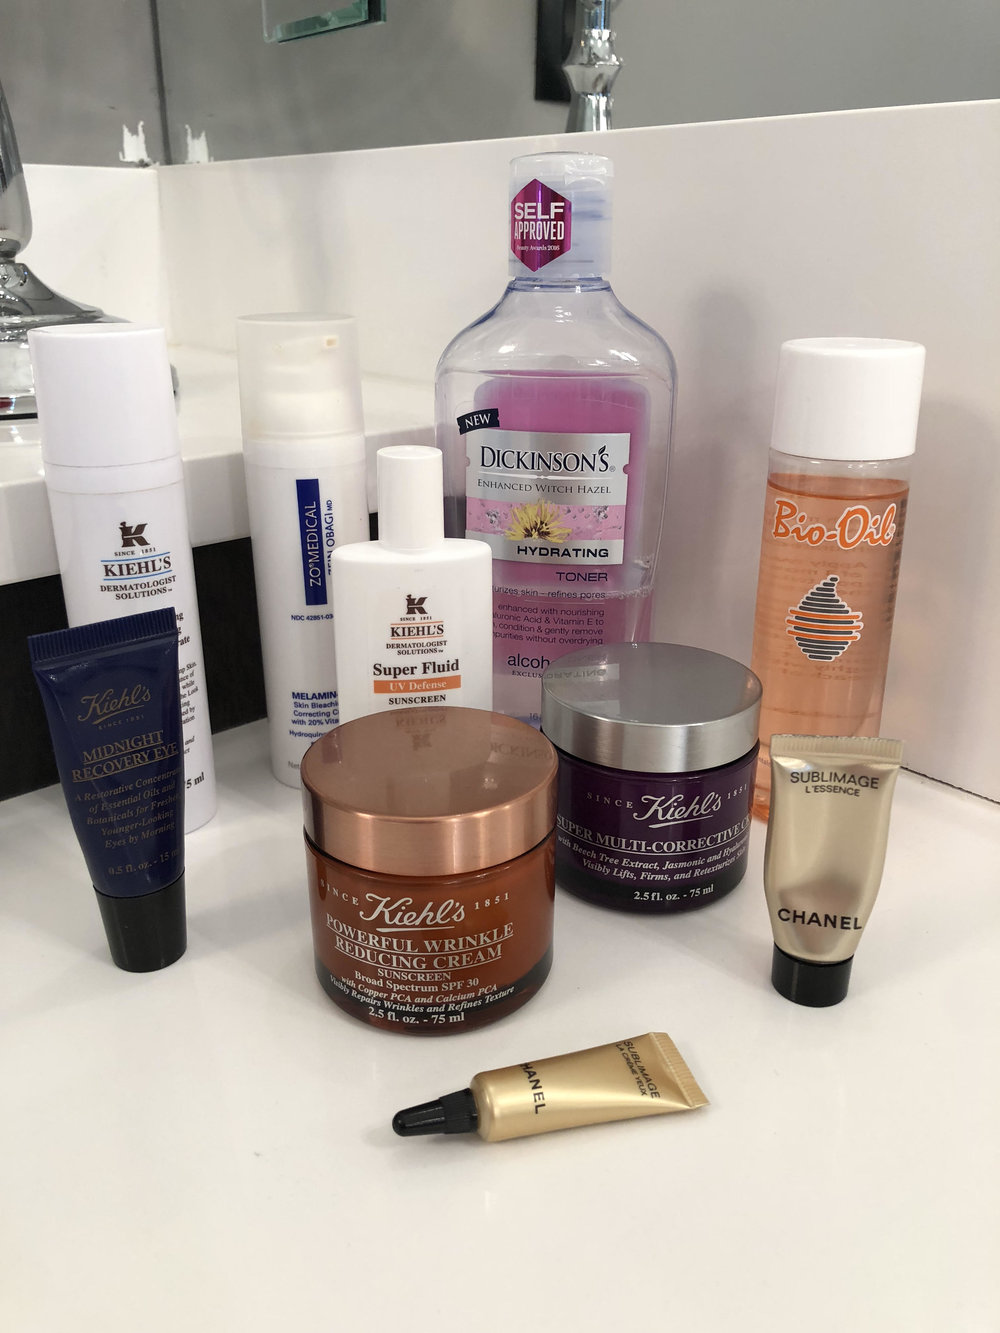 #SkinBabe Lauren Kaanan shares some of her favorite products!